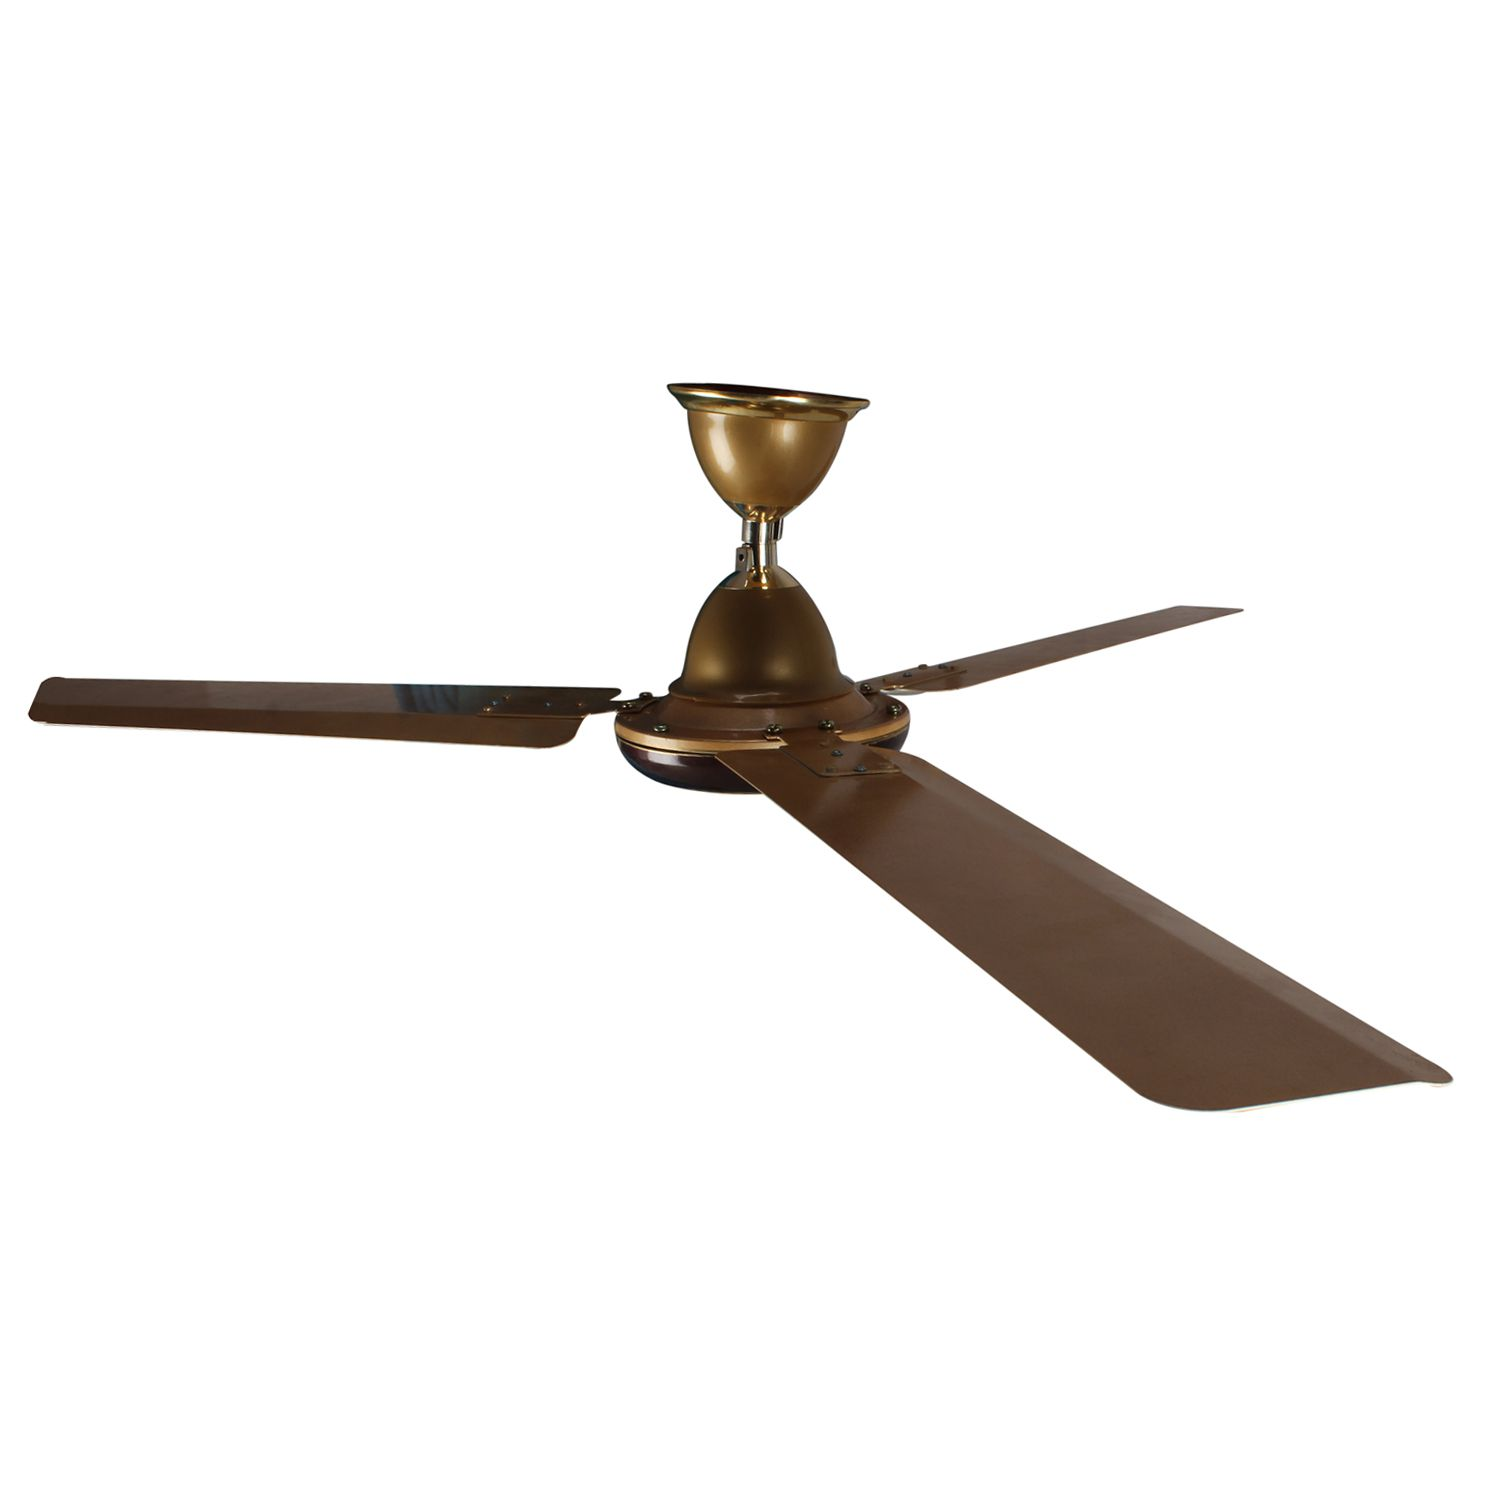 Best Of Ceiling Fan nds Pics — Beautiful Furniture Home Ideas Fan Emerson Cf Wiring Diagrams on